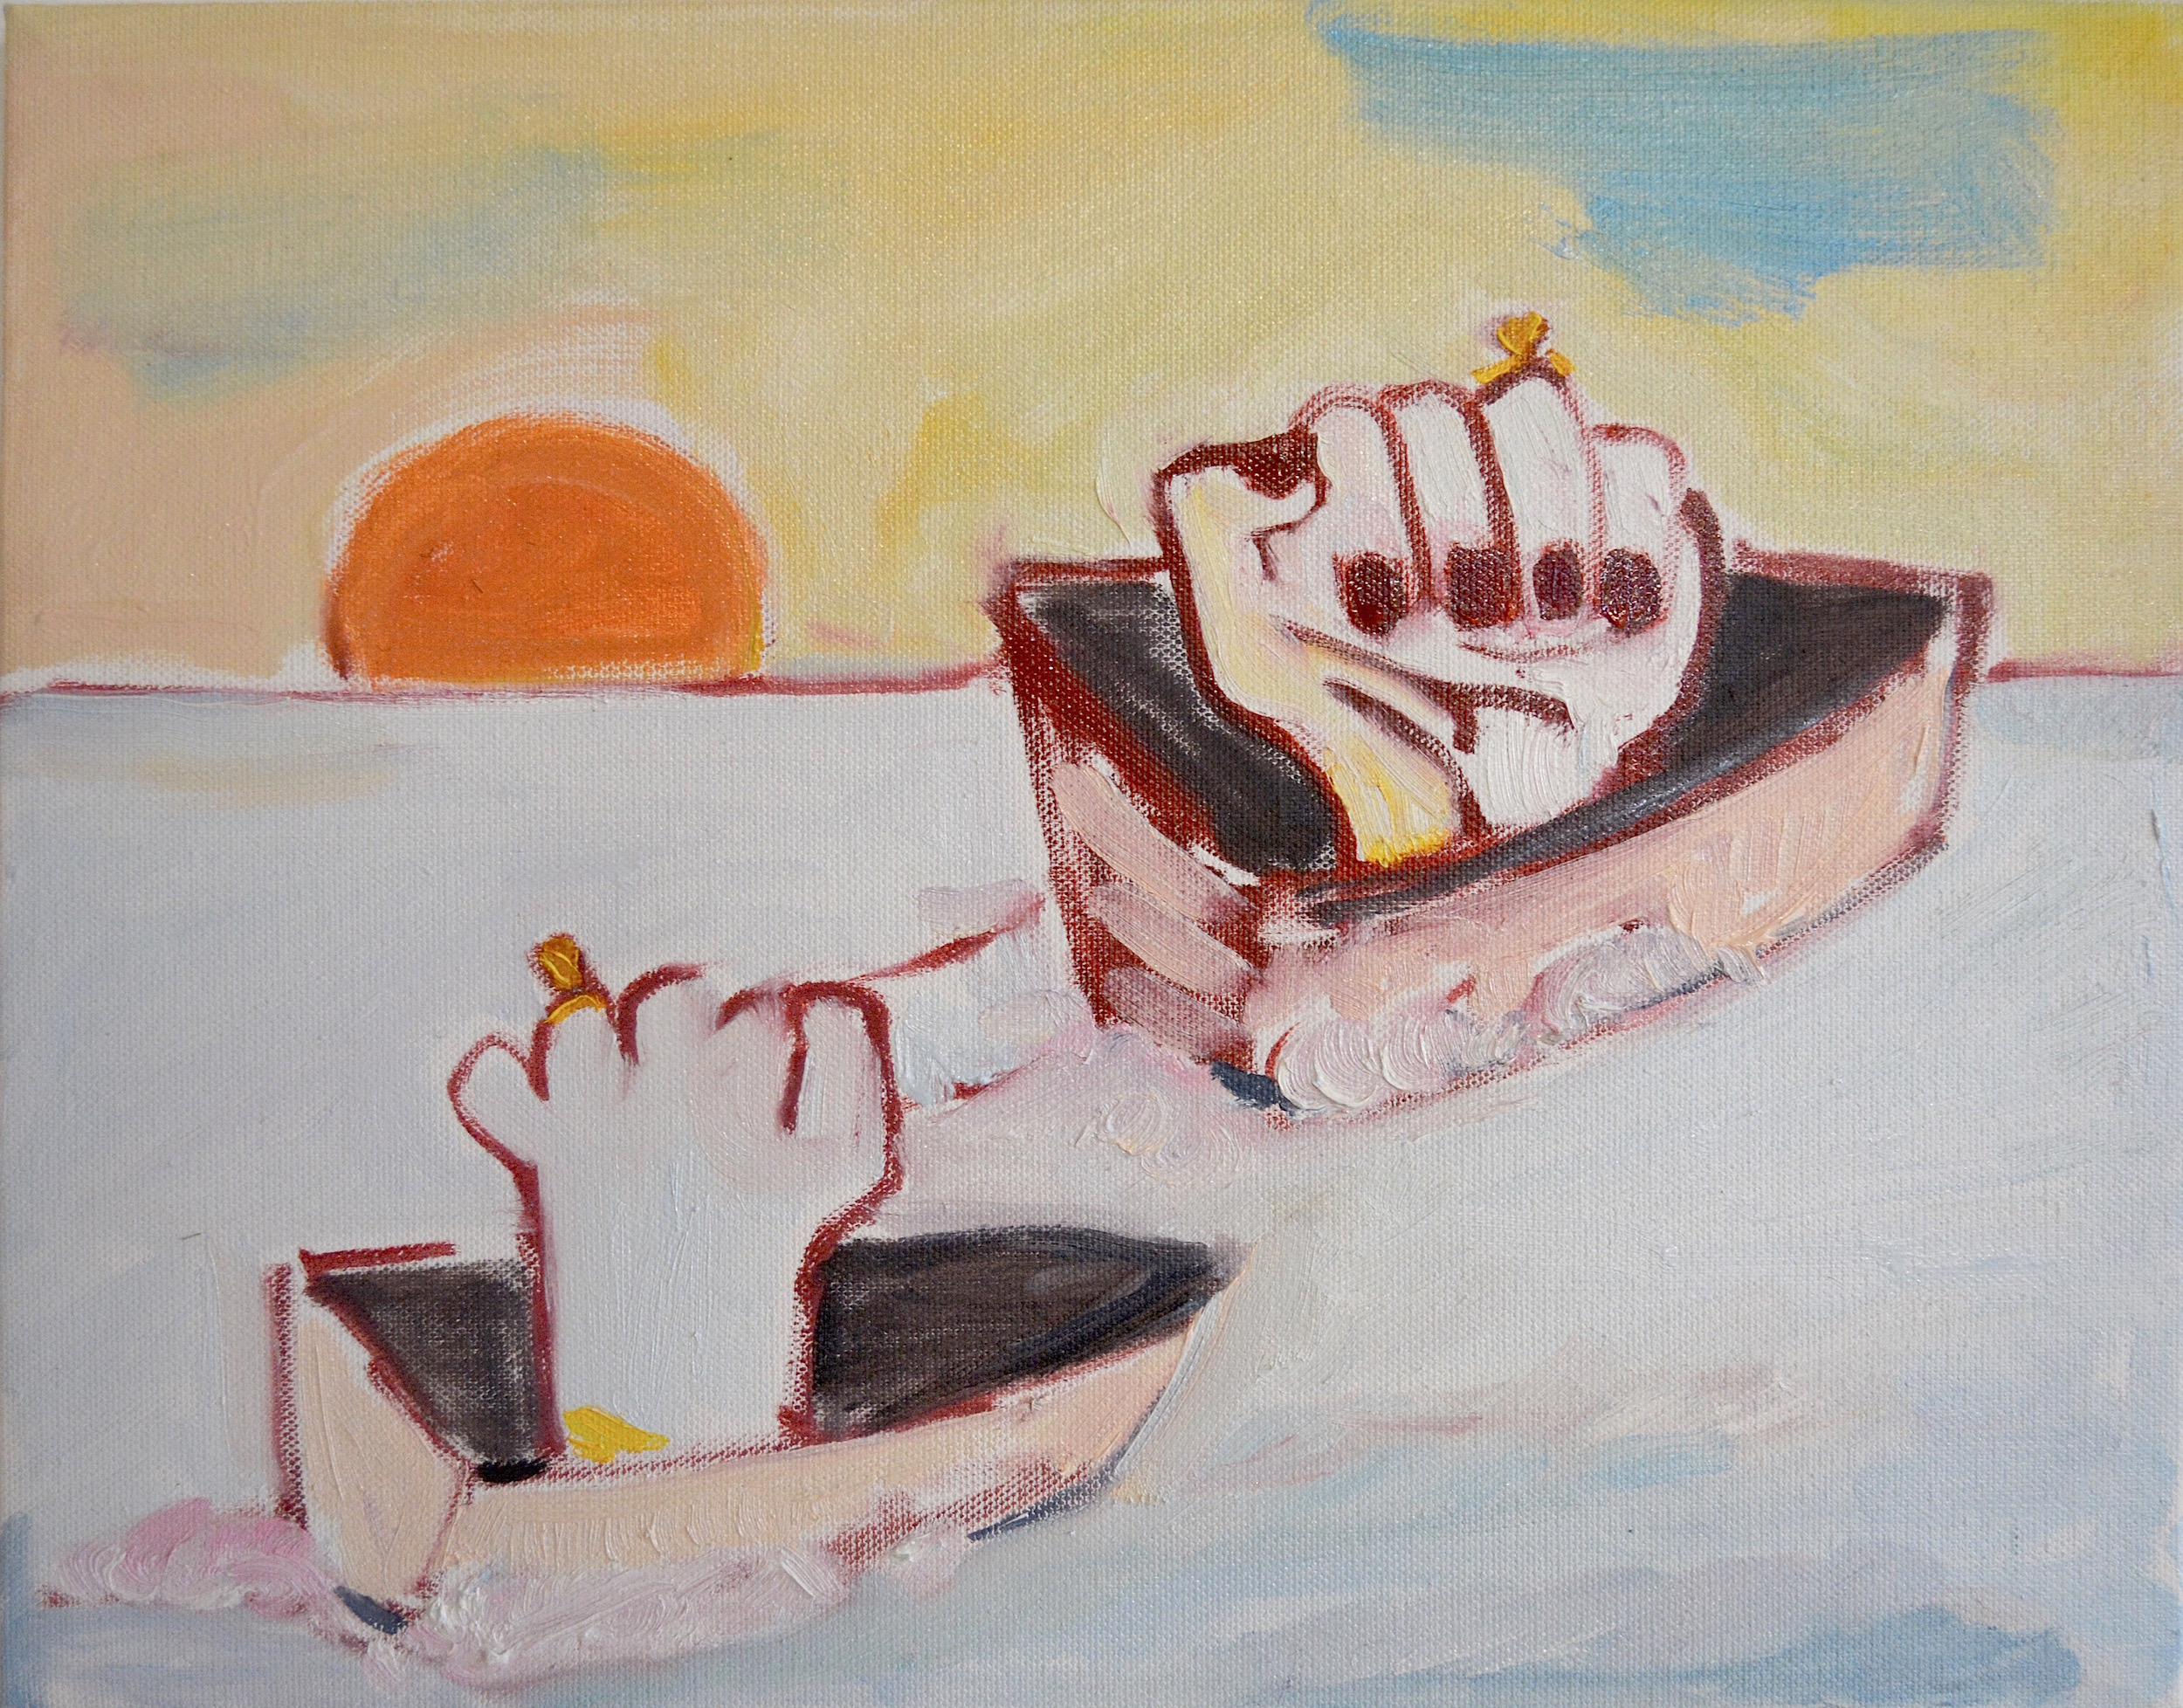 Boats and rings, 2016